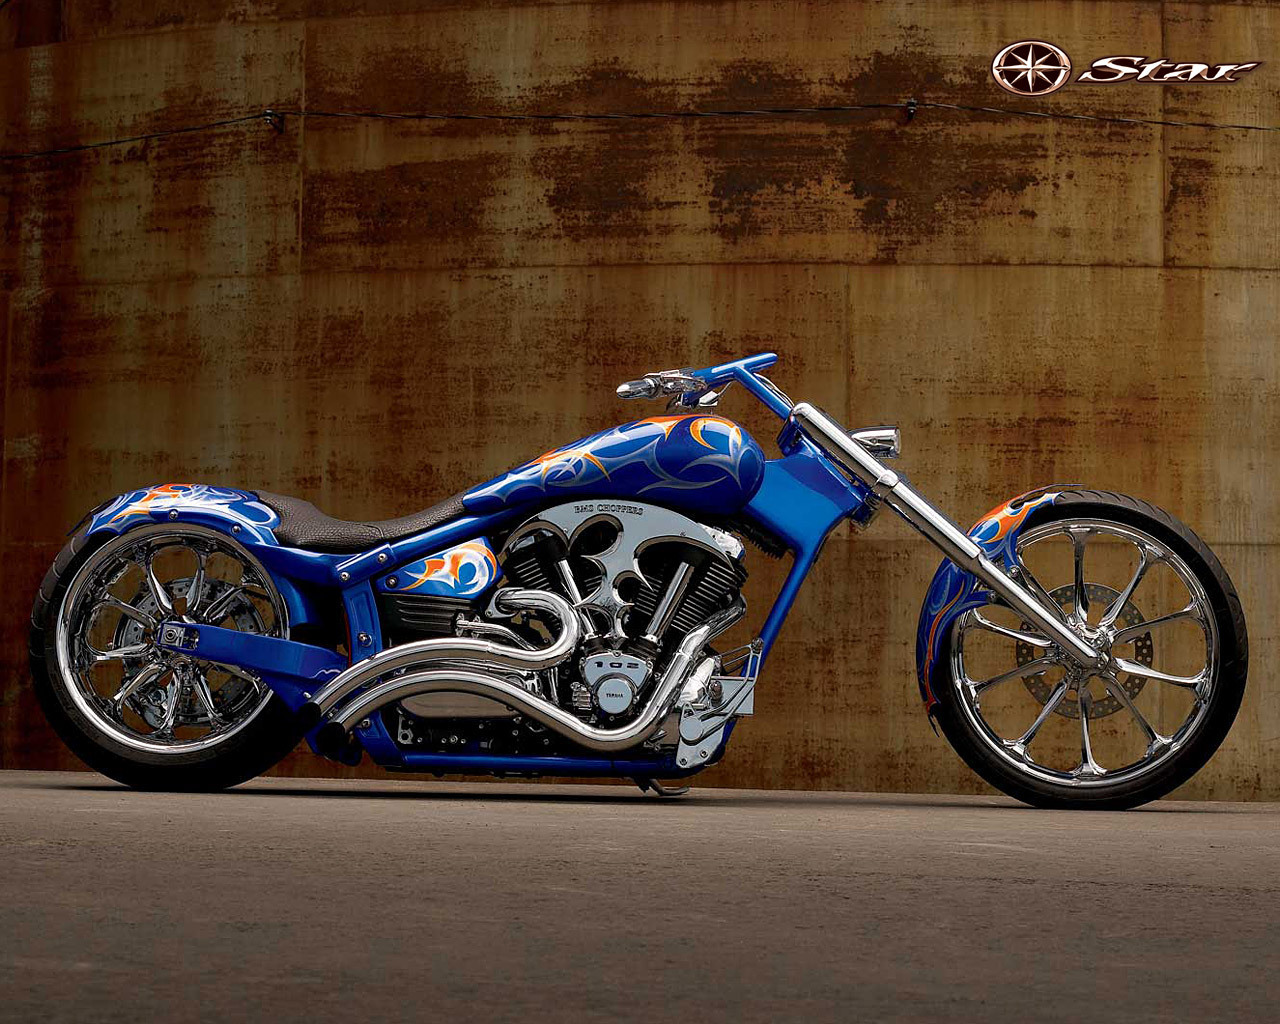 chopper motorcycles wallpaper - photo #4